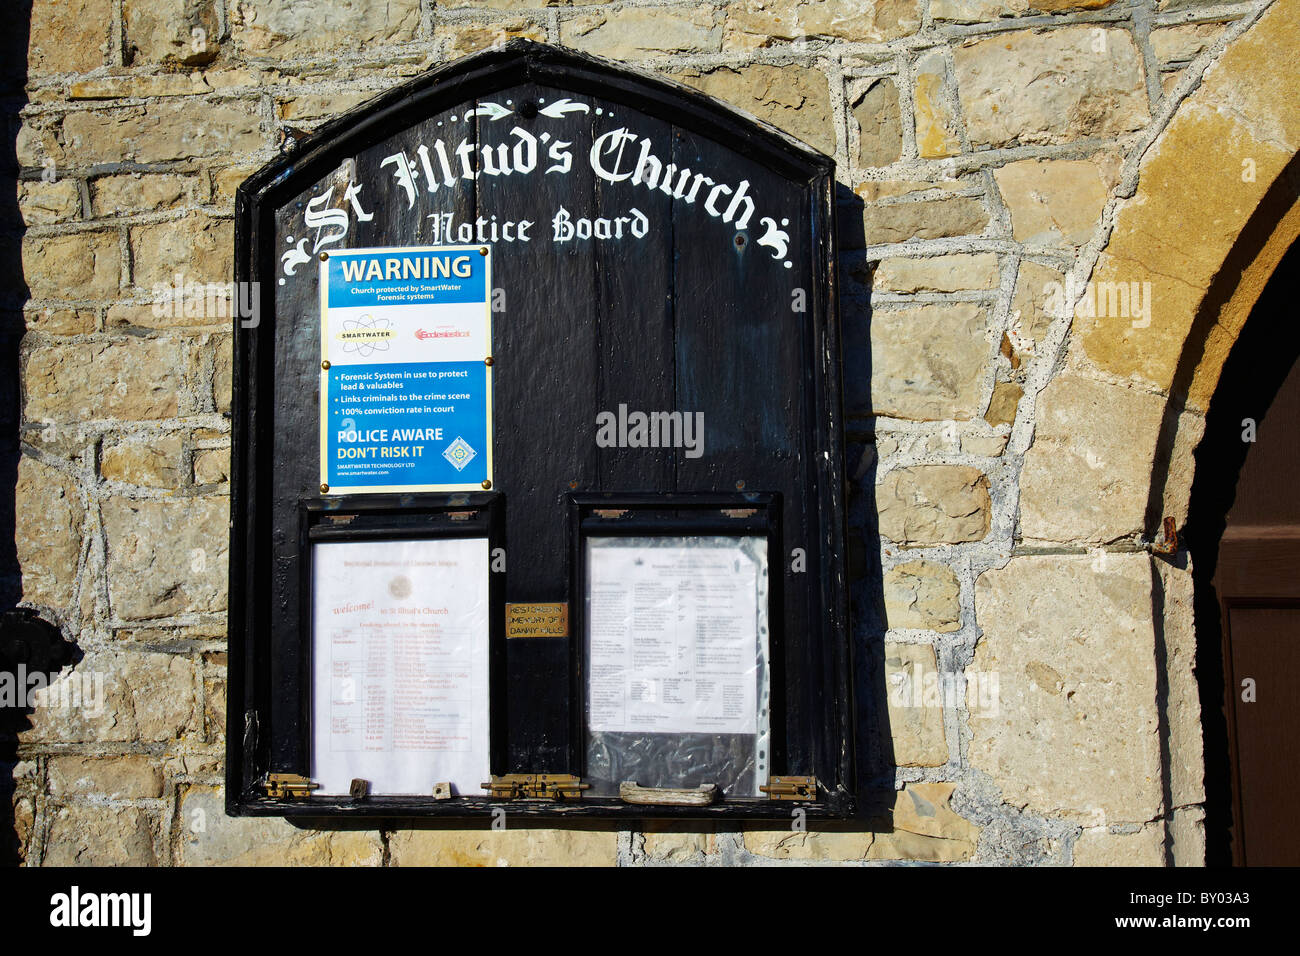 Warning Sign to Thieves on the noticeboard of St Illtud's Church, Llantwit Major, Glamorgan, South Wales, UK - Stock Image